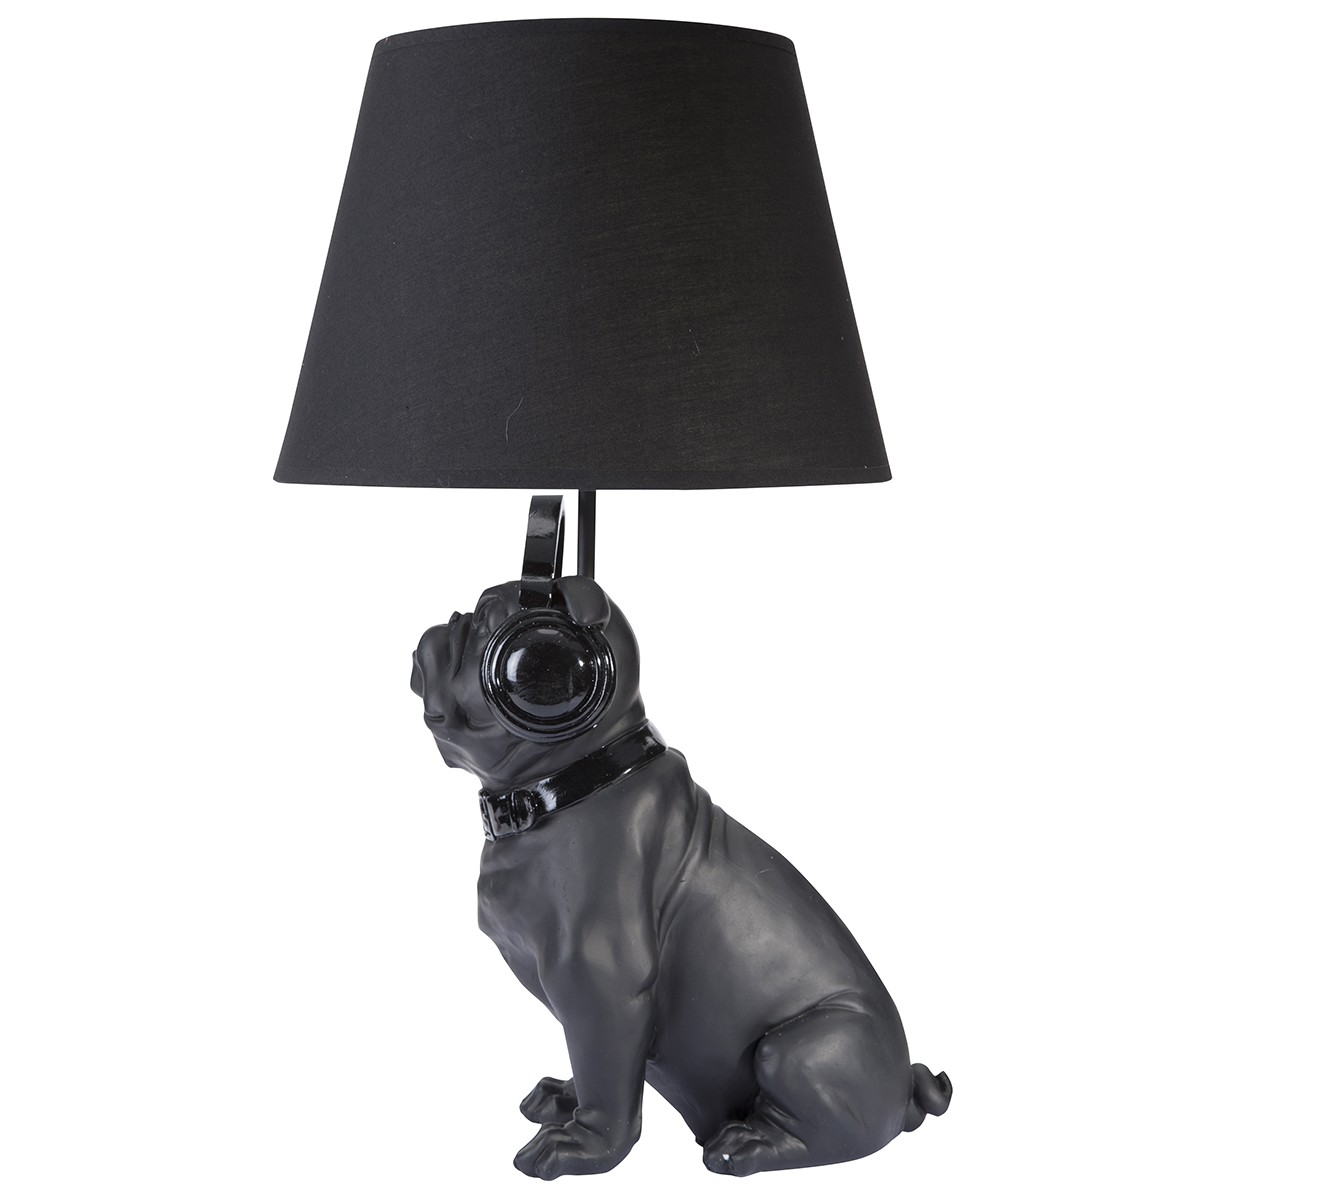 lampe bouledogue design noire avec wedestock 939. Black Bedroom Furniture Sets. Home Design Ideas